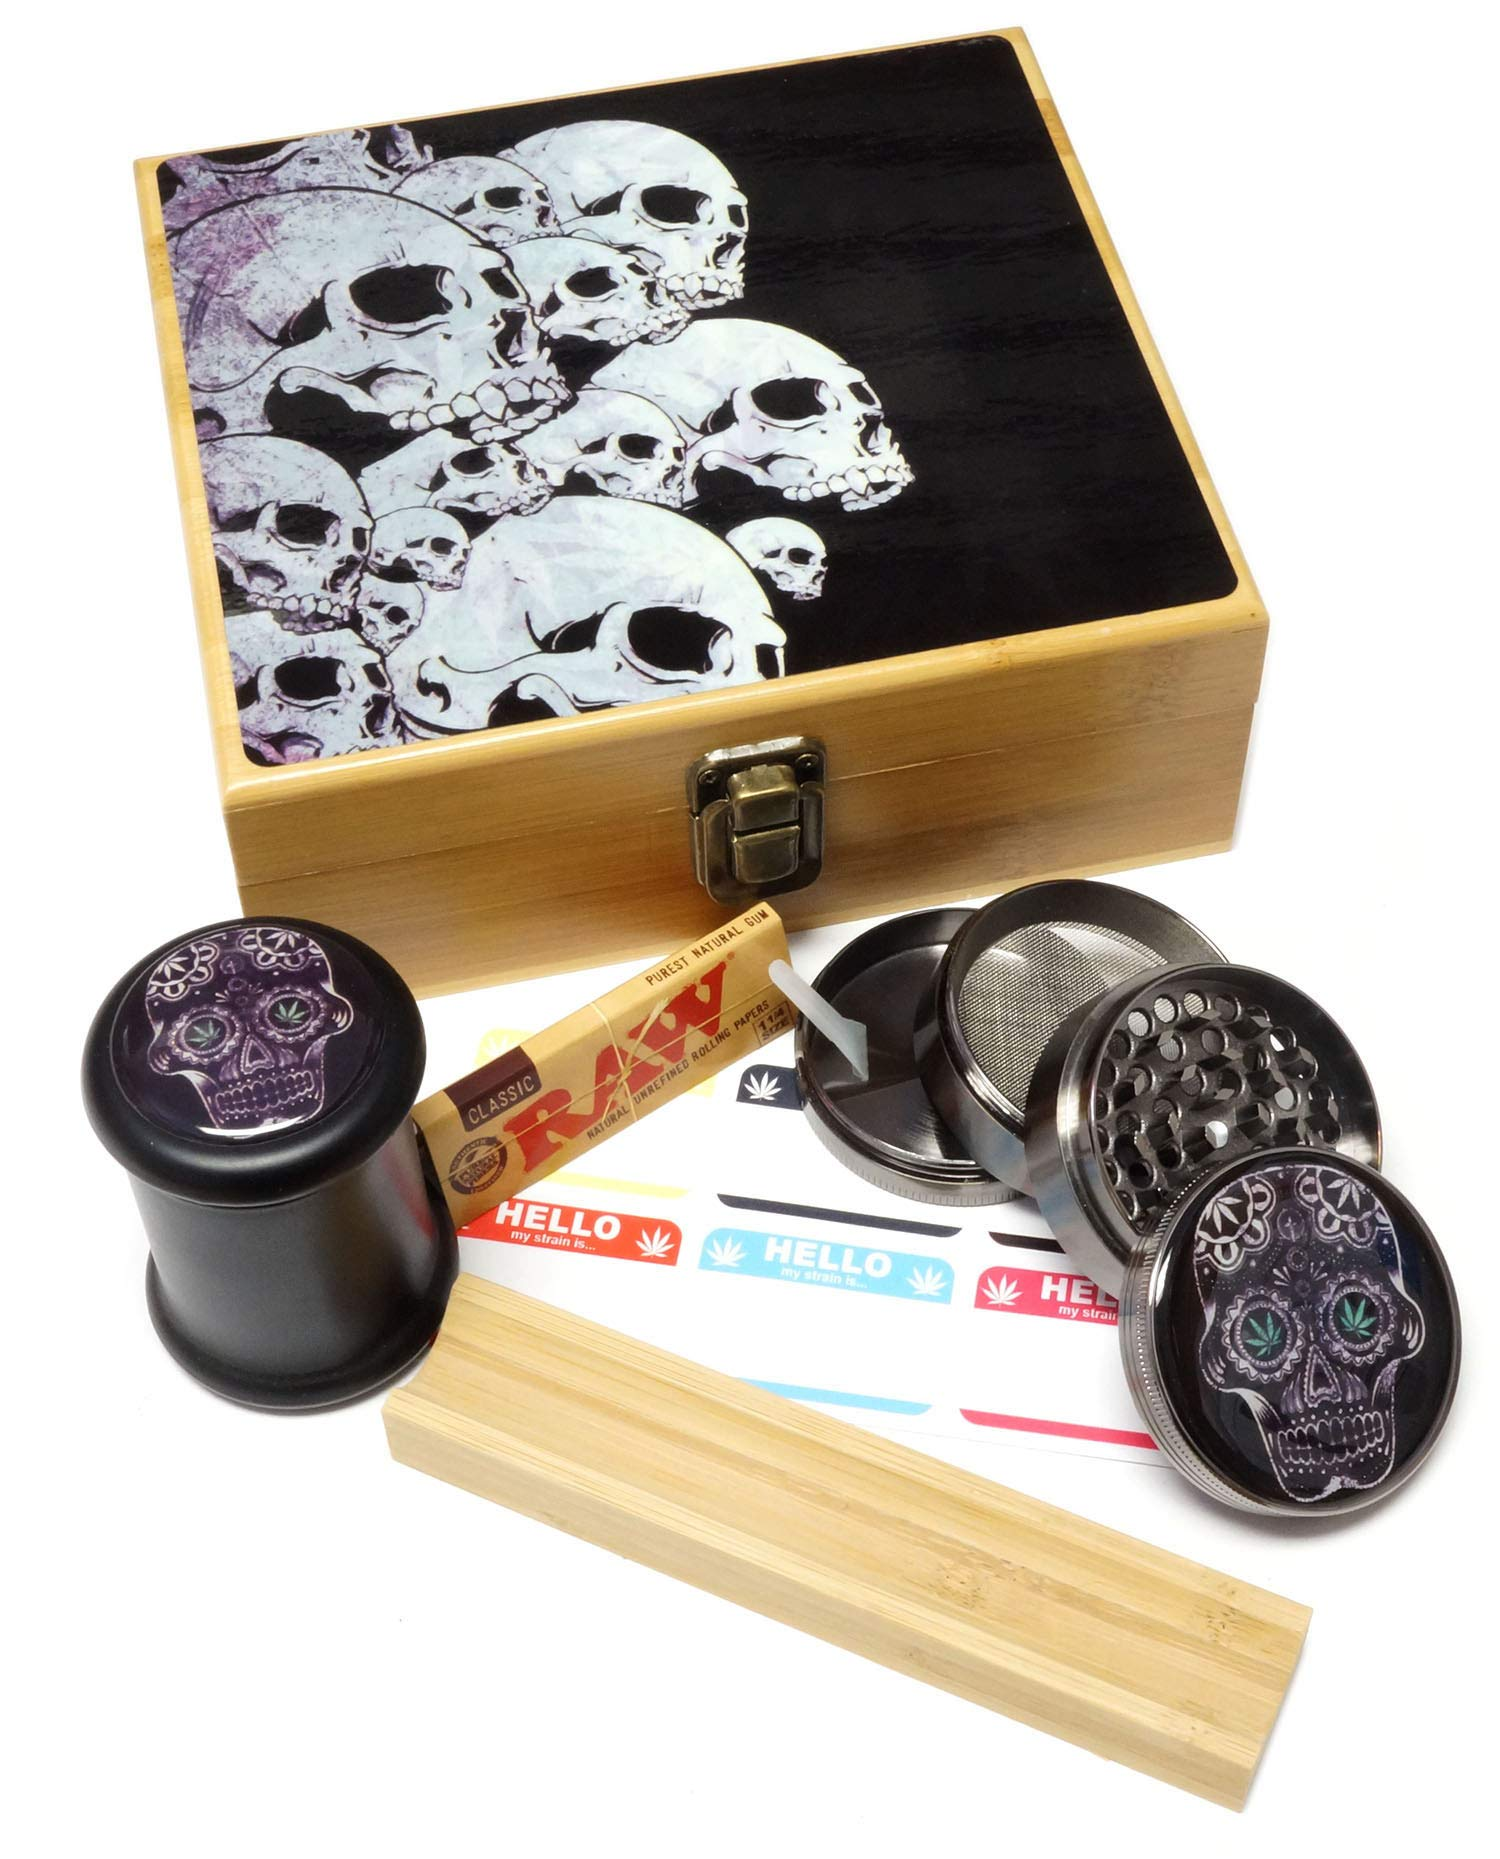 Skull Design - Large size Sacred Geometry Stash Box with Latch, Grinder & Pop Top Glass Jar Package & Free Accessories Item# LBCS020818-6 by Cali Factory